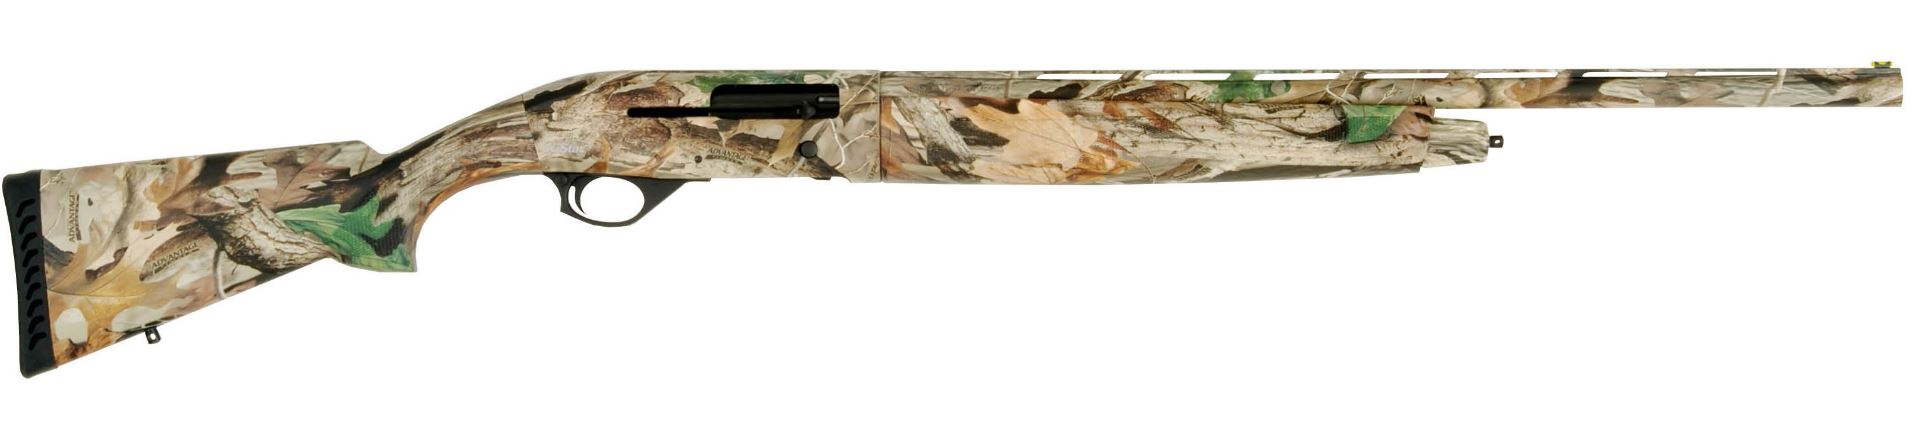 TriStar Sporting Arms Viper G2 Youth Camo 20 Gauge